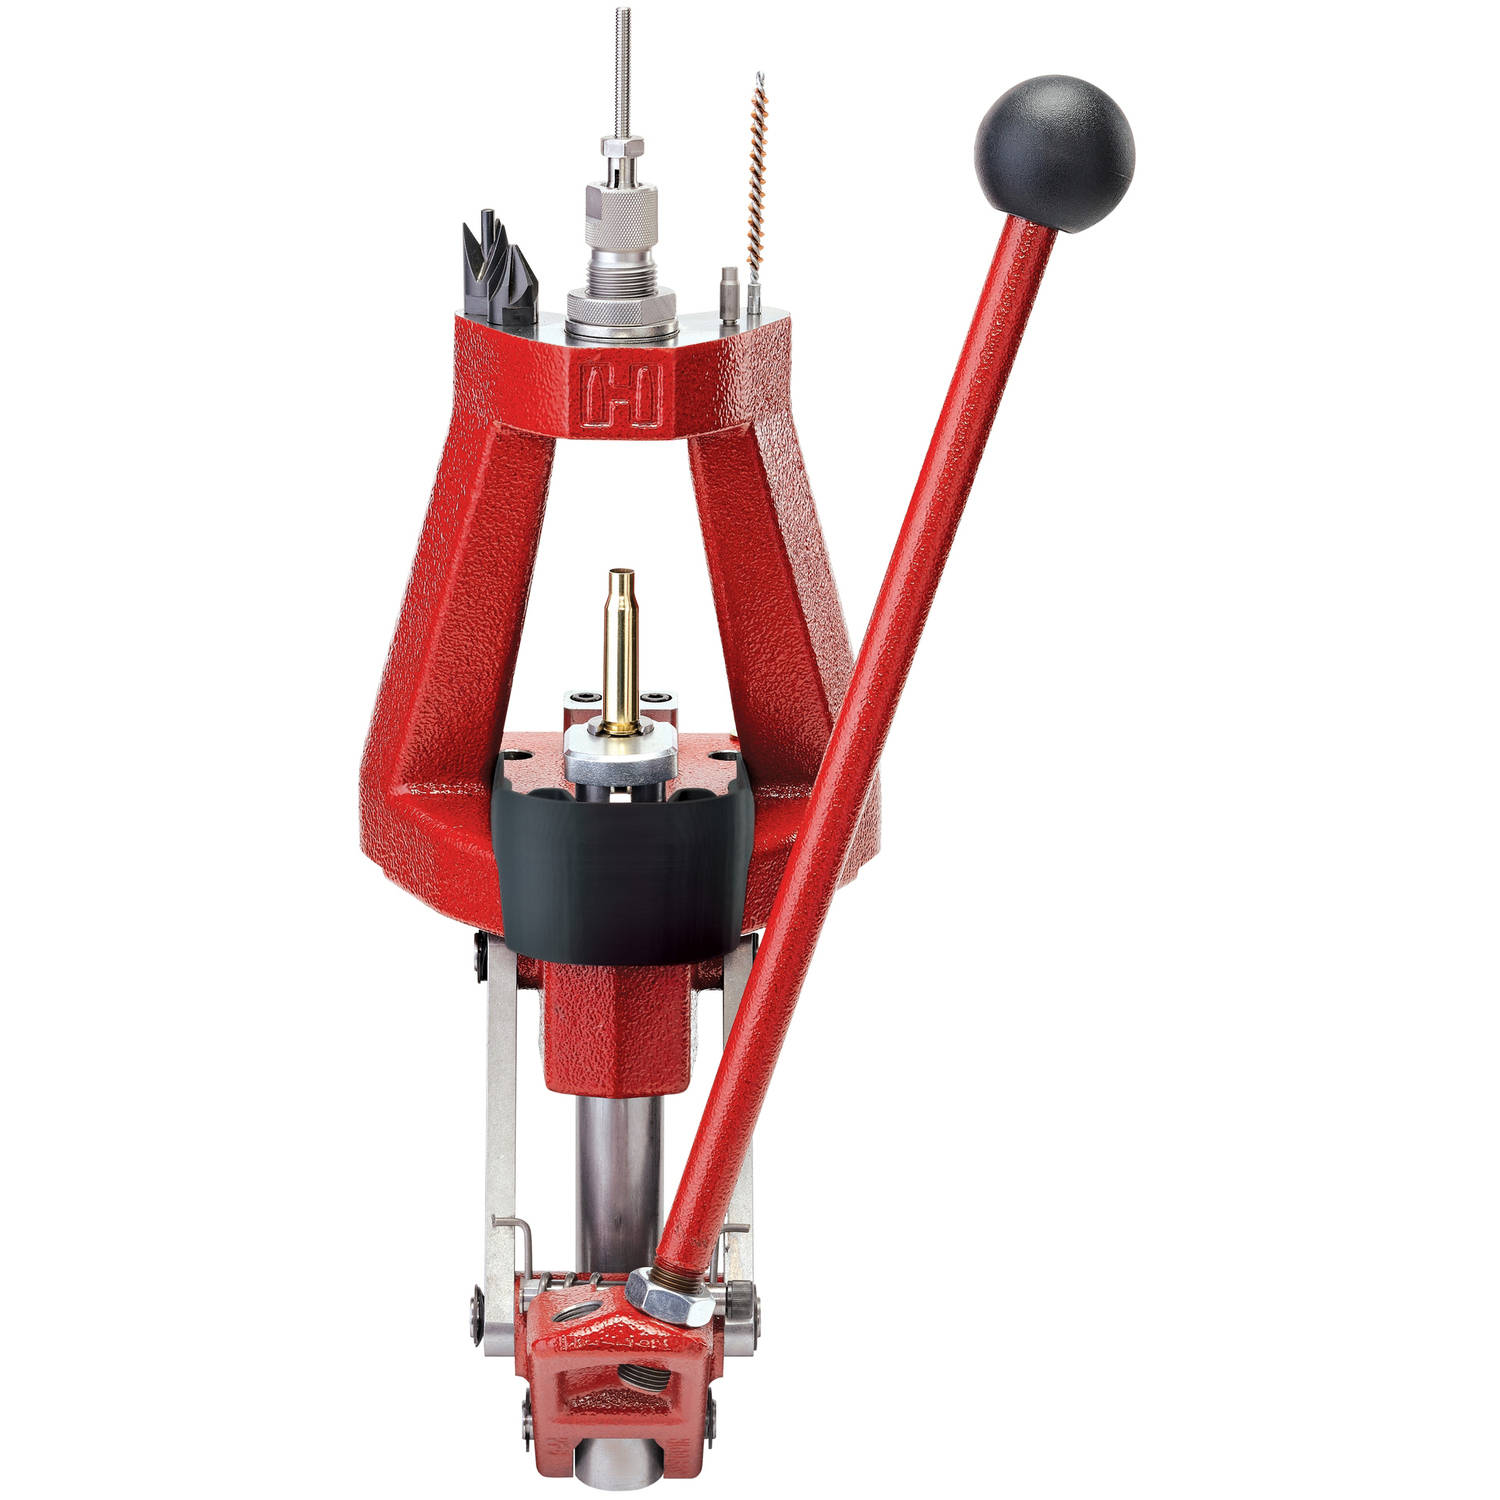 Hornady 085520 Lock-N-Load Reloading Press Cast Iron by HORNADY MFG CO